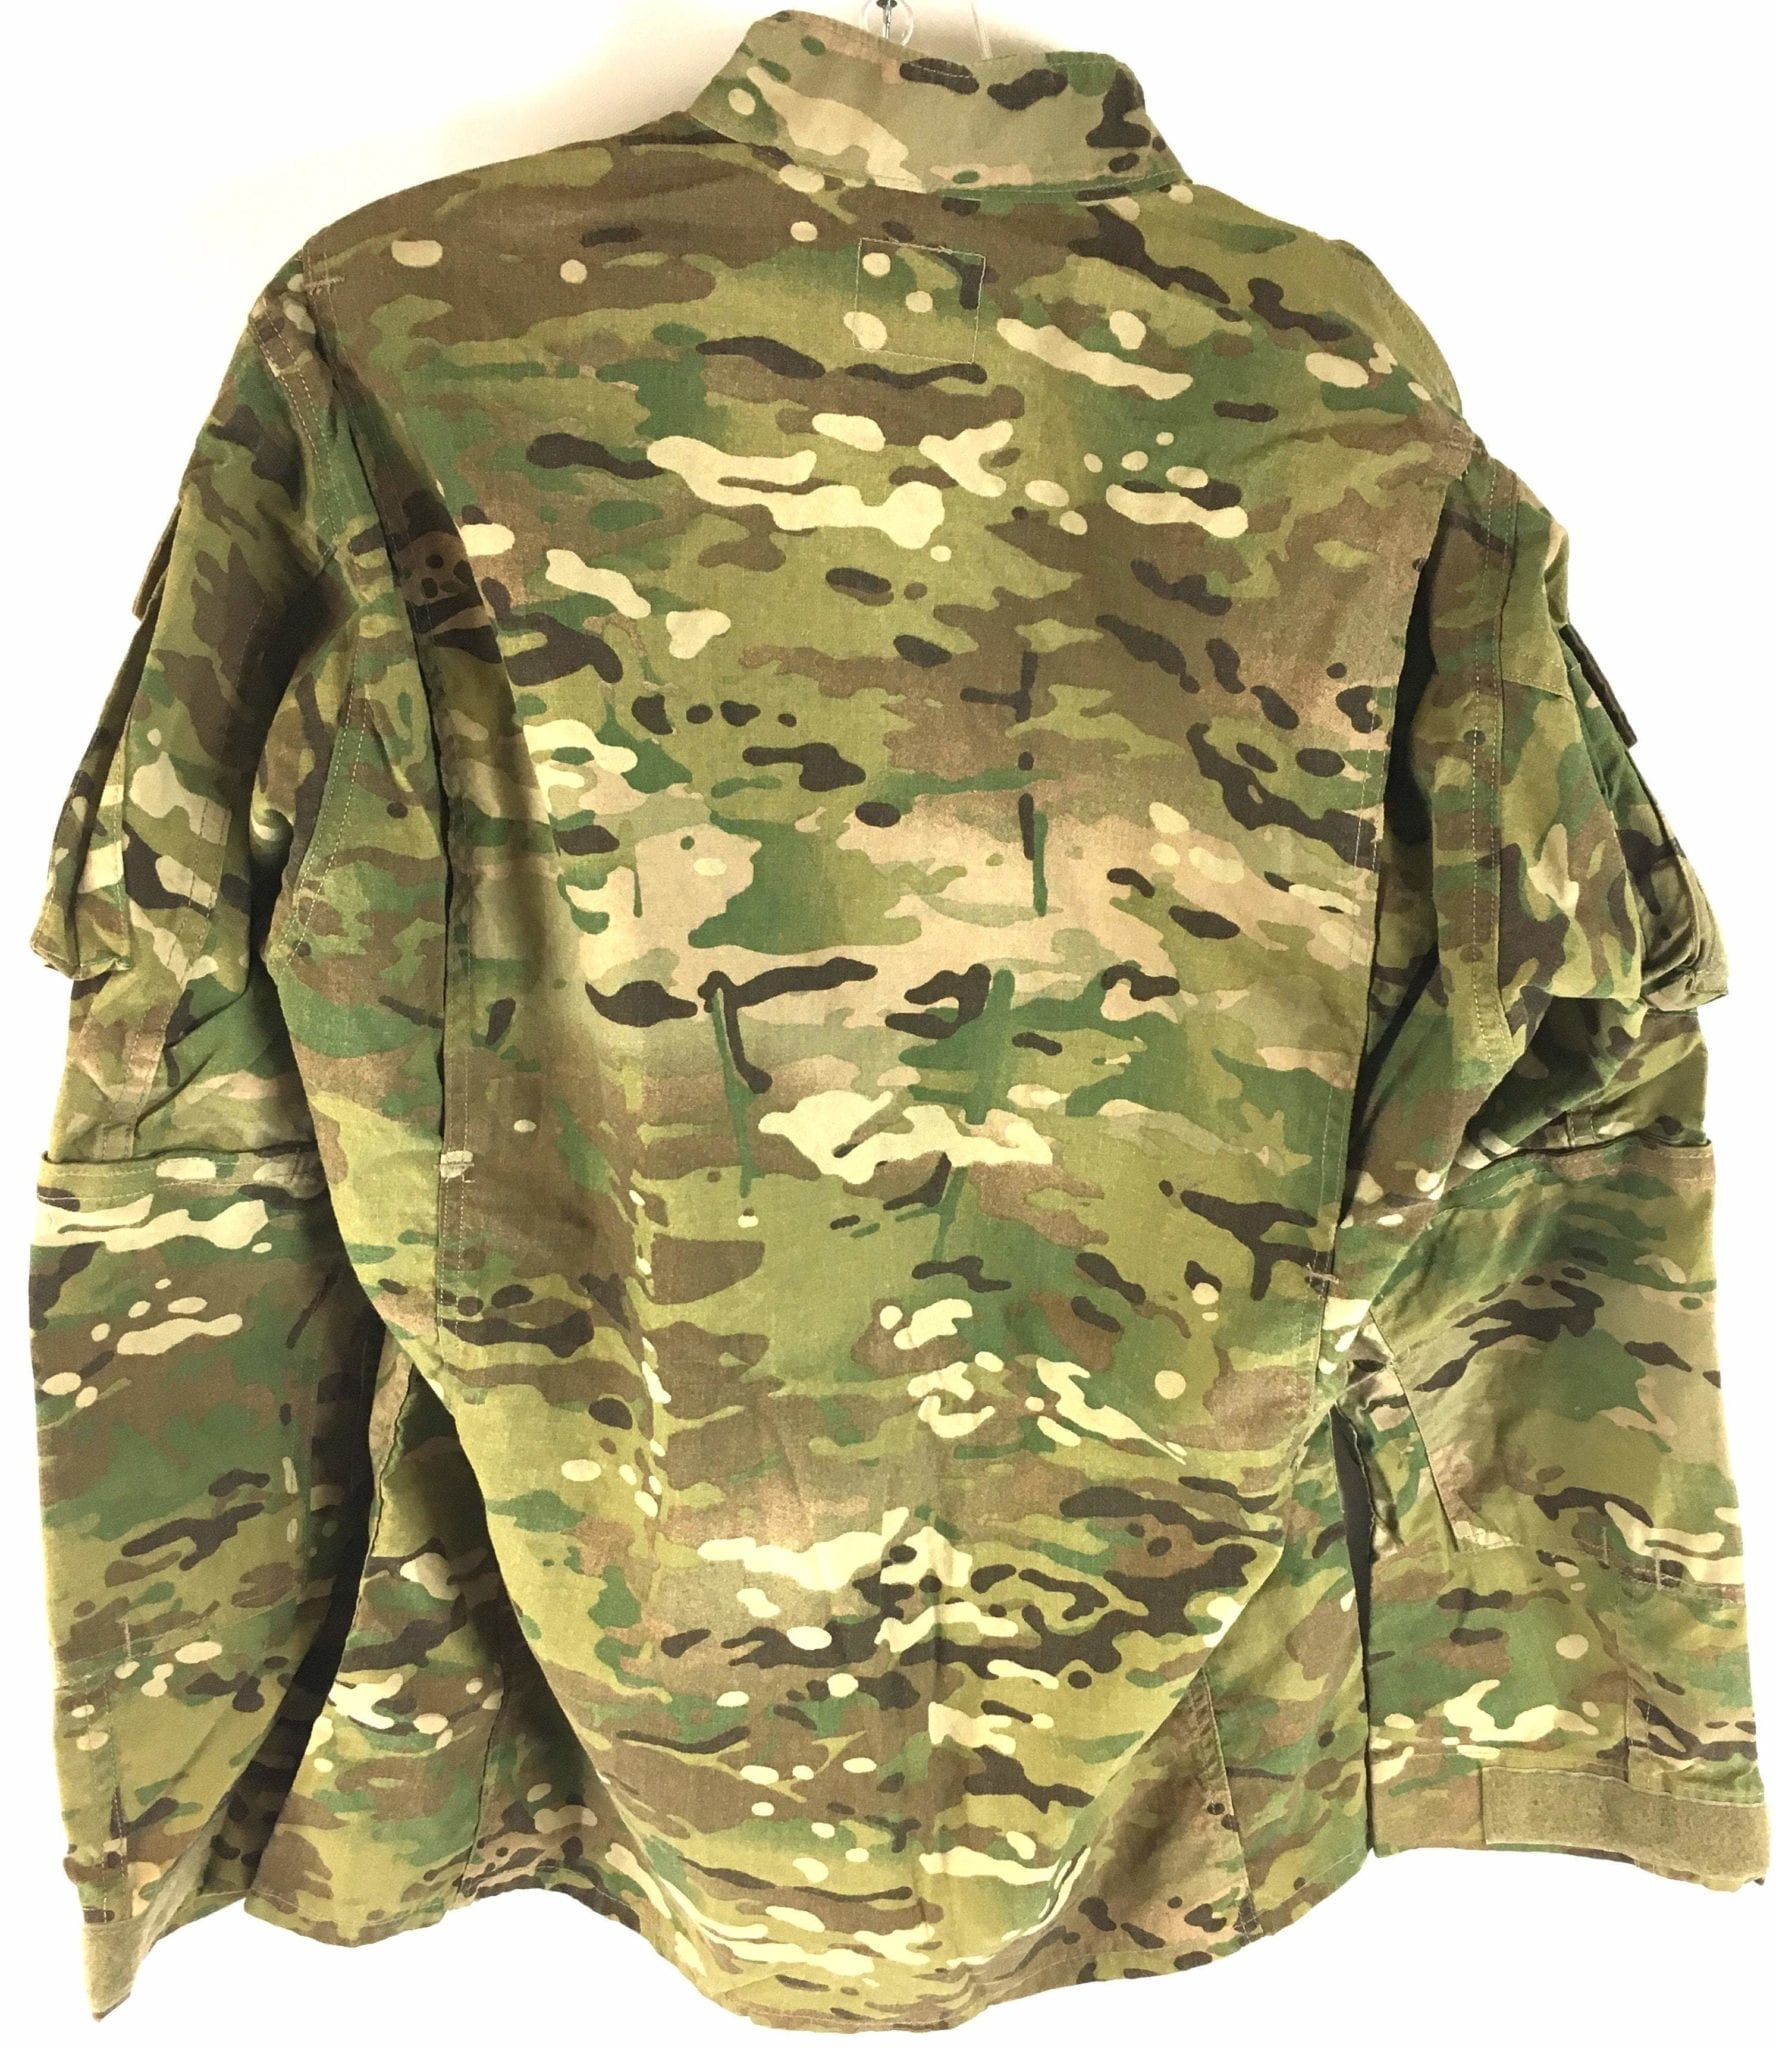 Army Multicam OCP Flame Resistant Coat with Hook and Loop Sleeve Cuffs